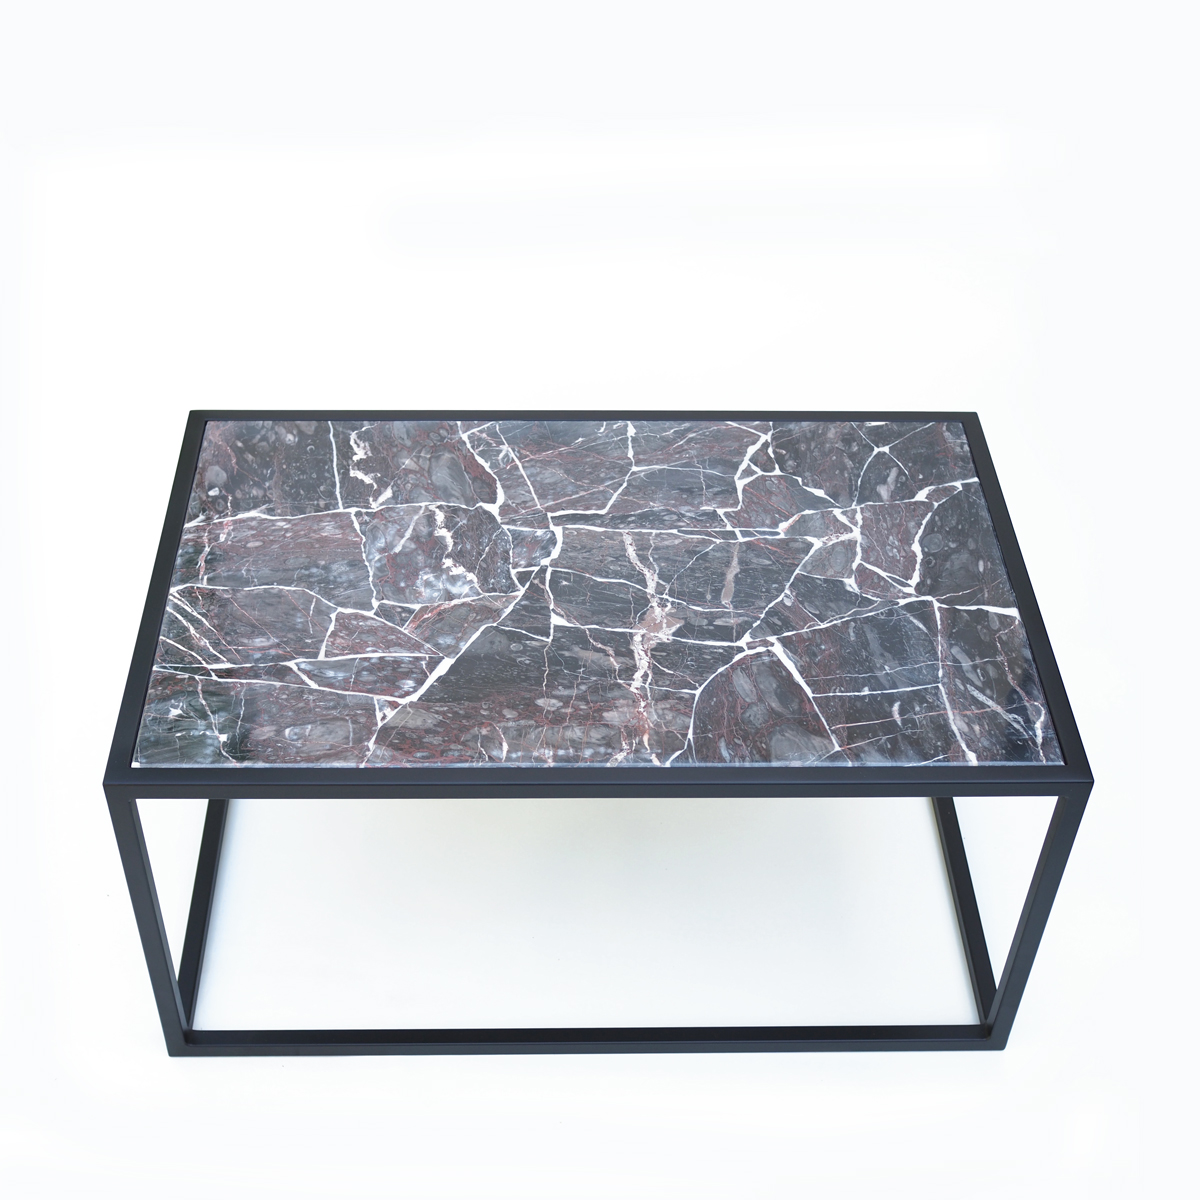 marble-table-top-with-metal-frame.jpg